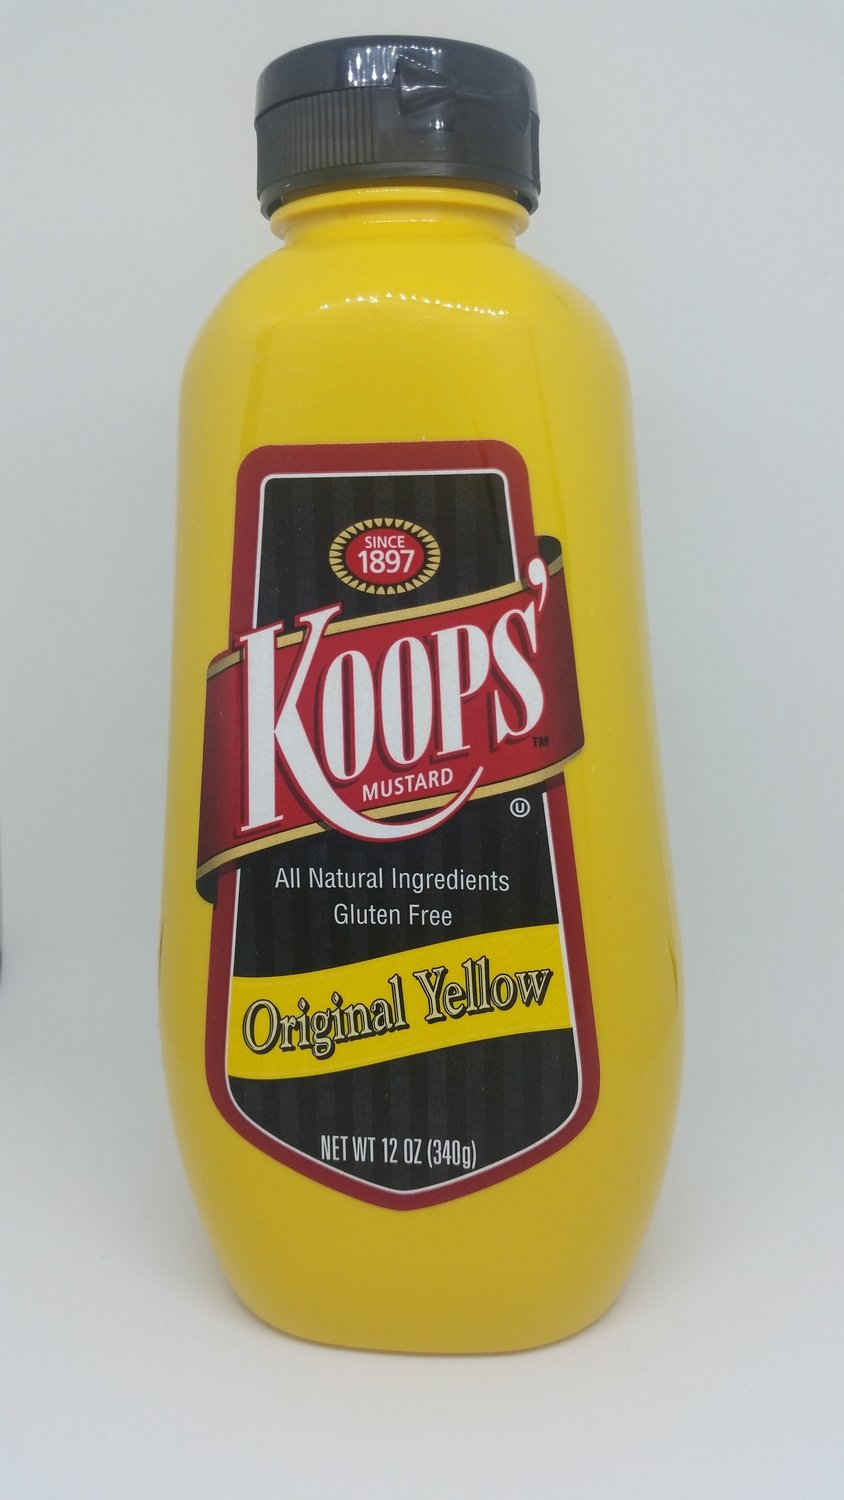 Koops' Original Yellow Mustard